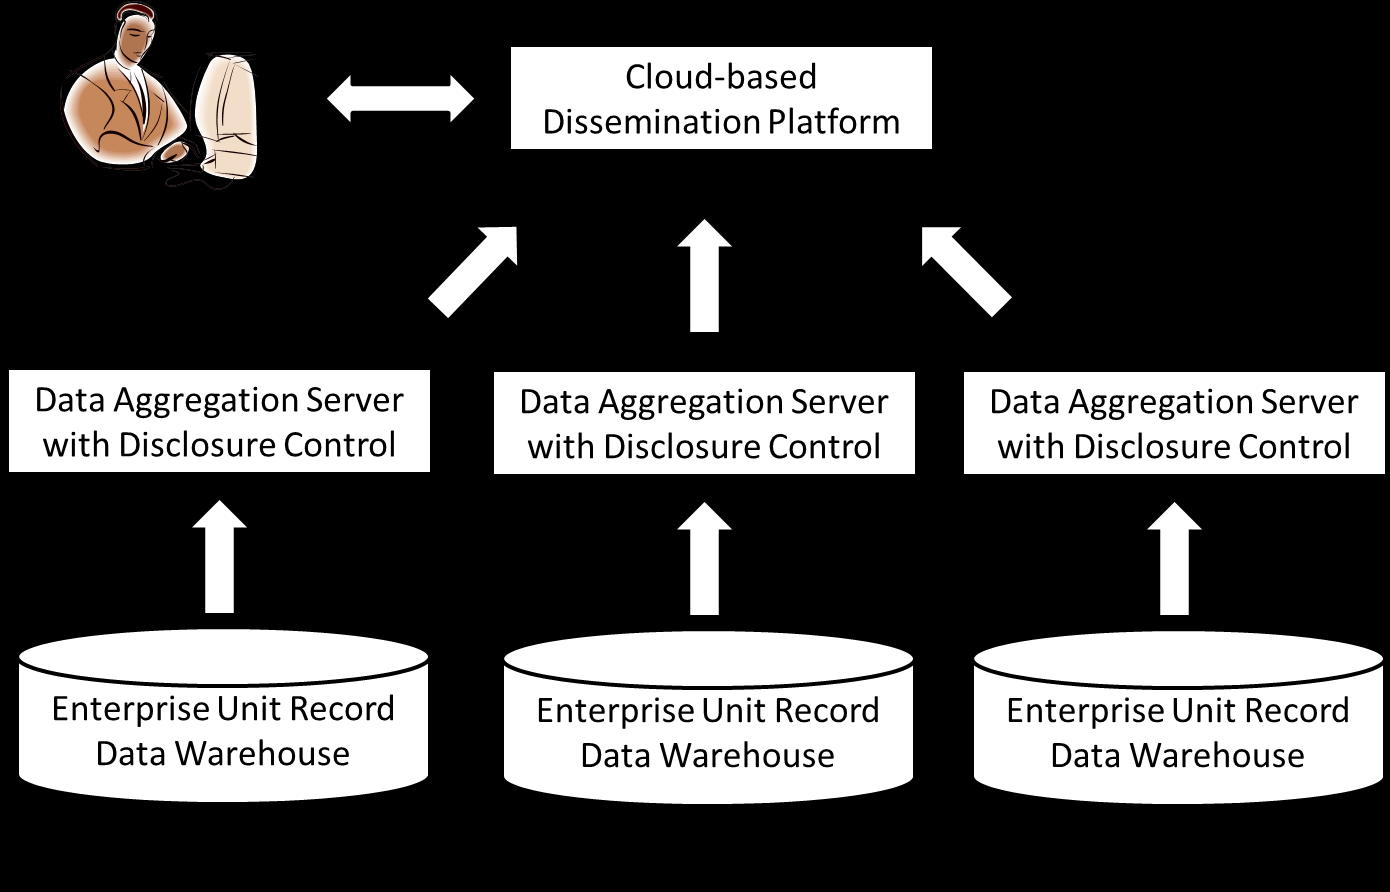 Figure 2.1 Seamless interagency data querying using a self-service cloud-based component model. 3.